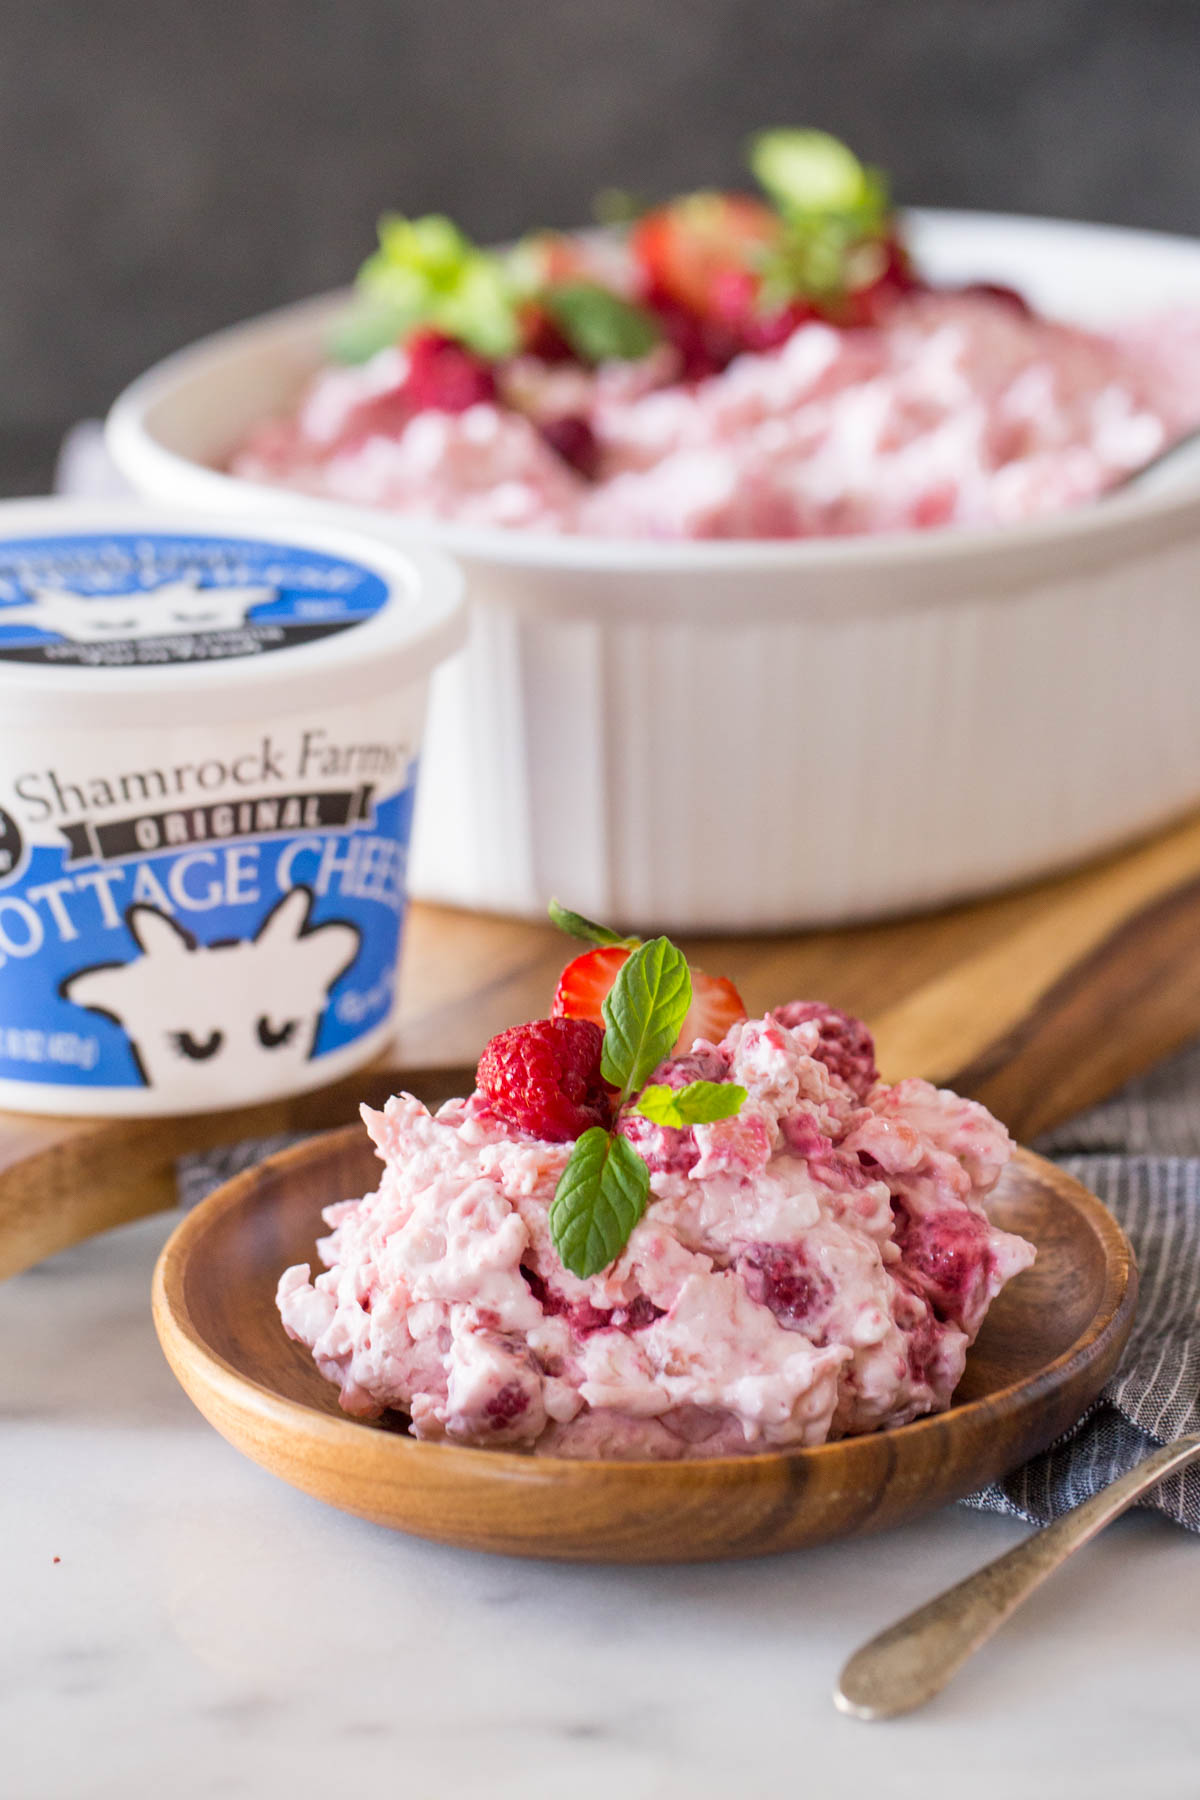 Very Berry Fluffy Salad dished out into a bowl with Shamrock Farms cottage cheese in the background.